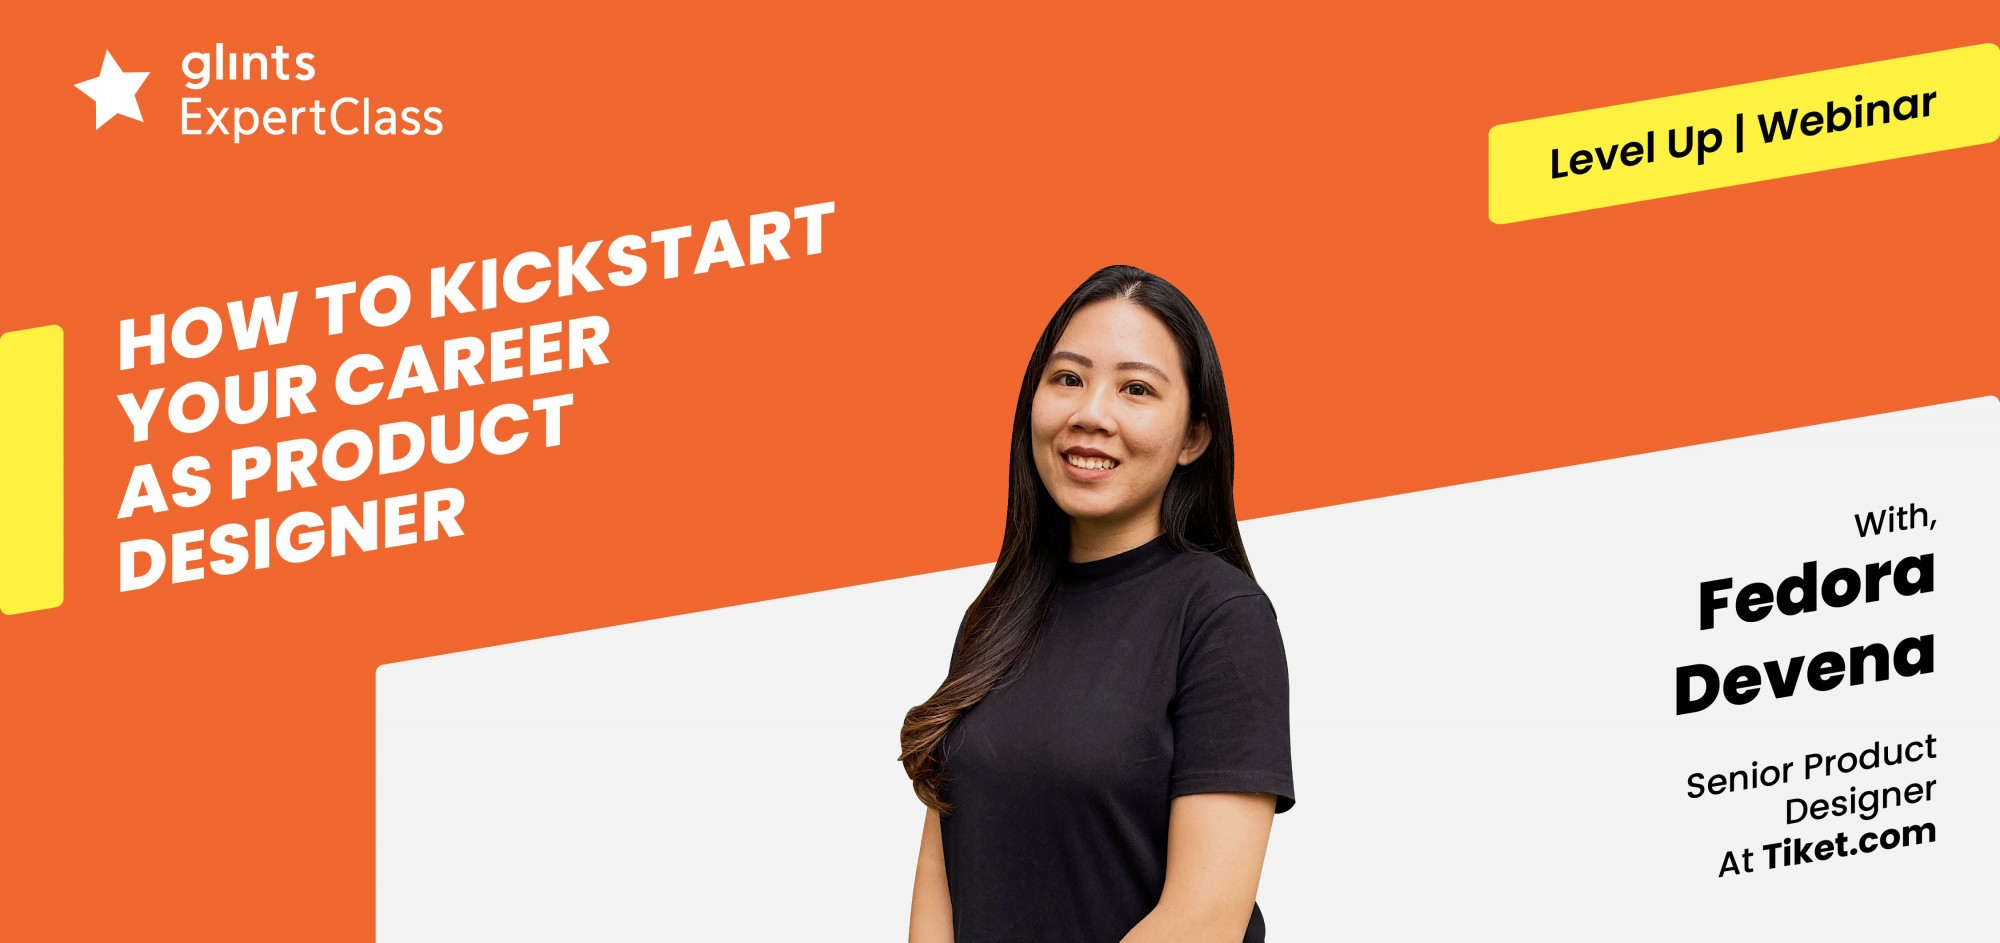 [Online GlintsExpertClass] How To Kickstart Your Career As Product Designer